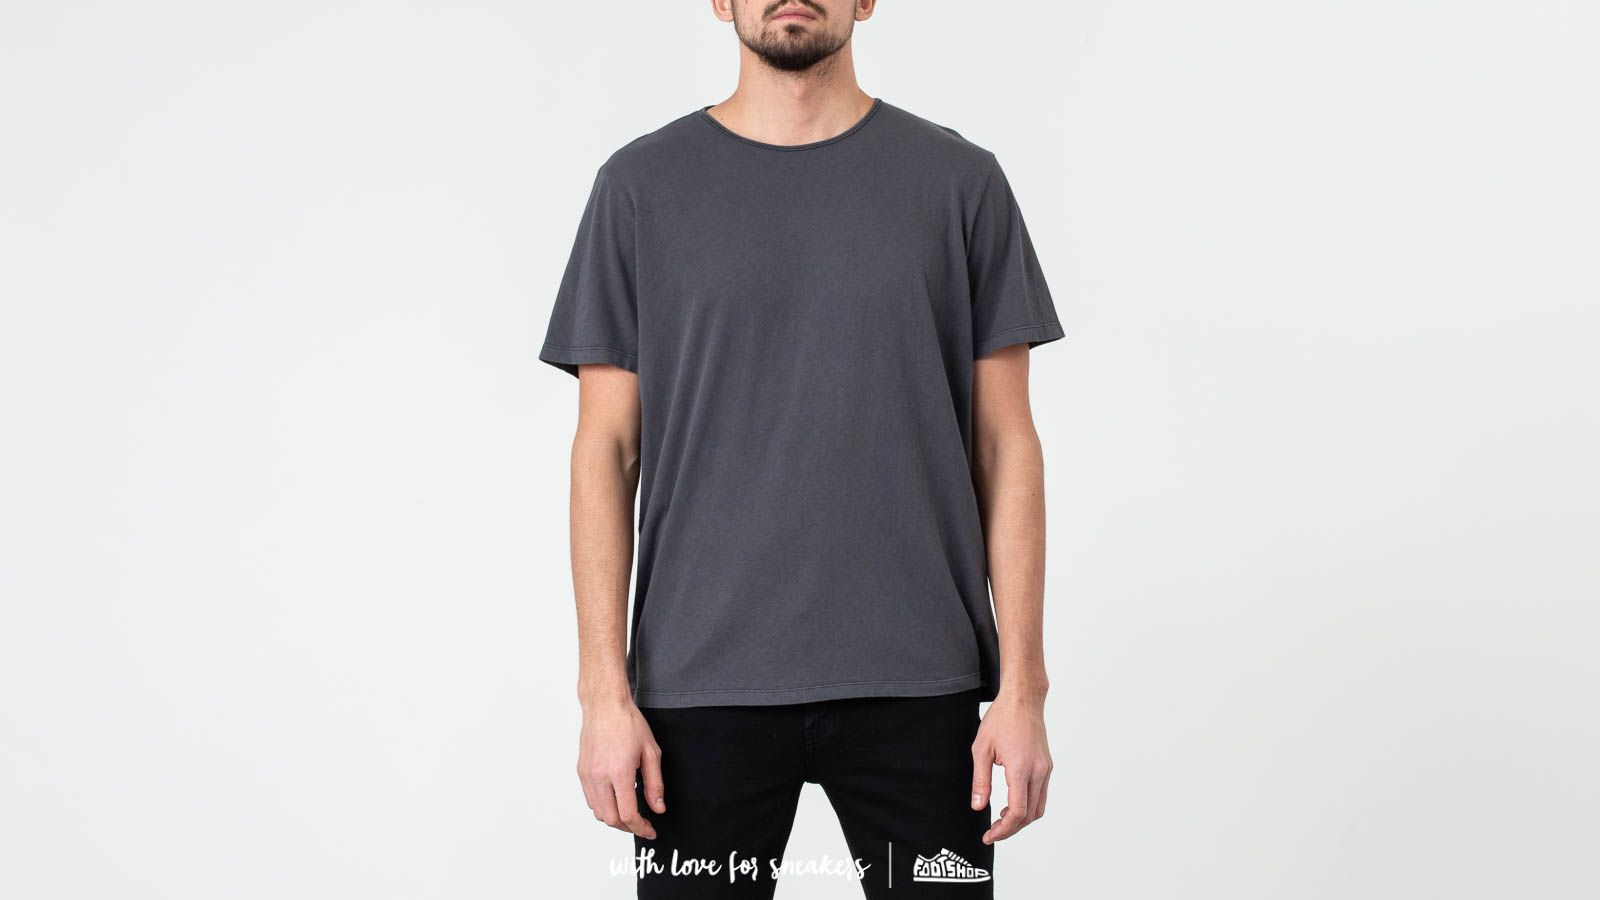 Our Legacy Smog Bandage Cotton Delicate U-Neck Tee